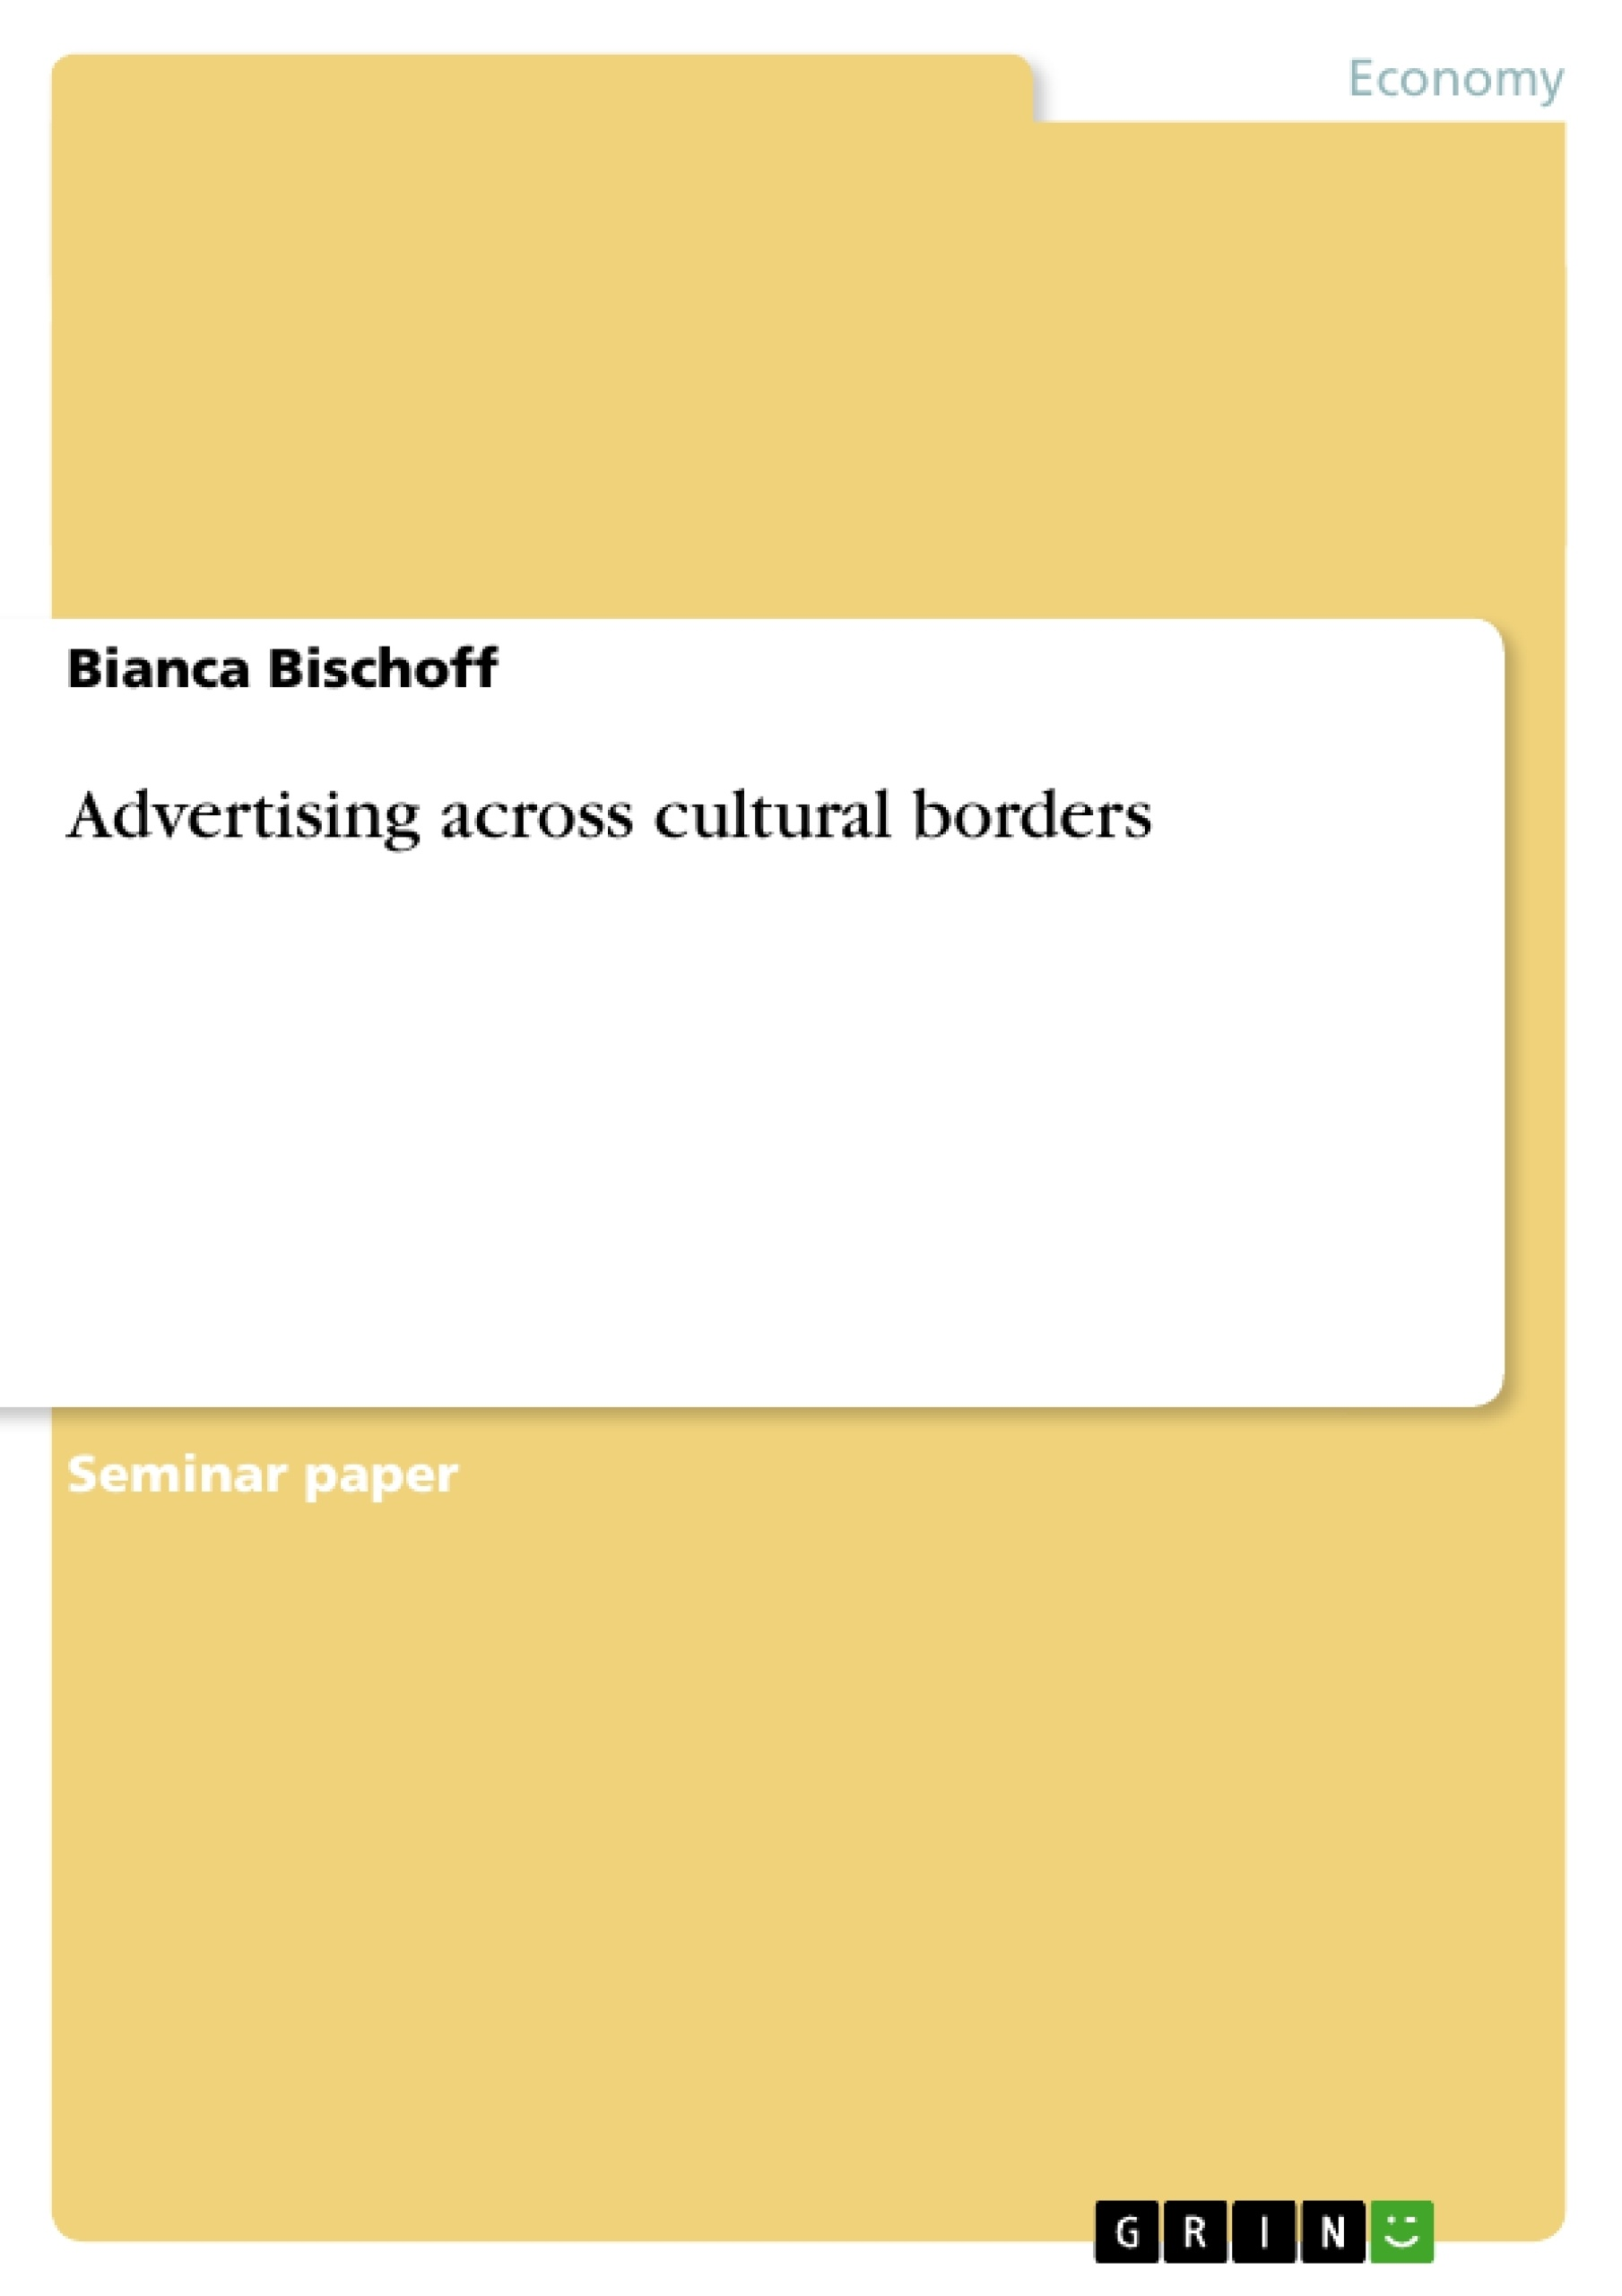 Title: Advertising across cultural borders